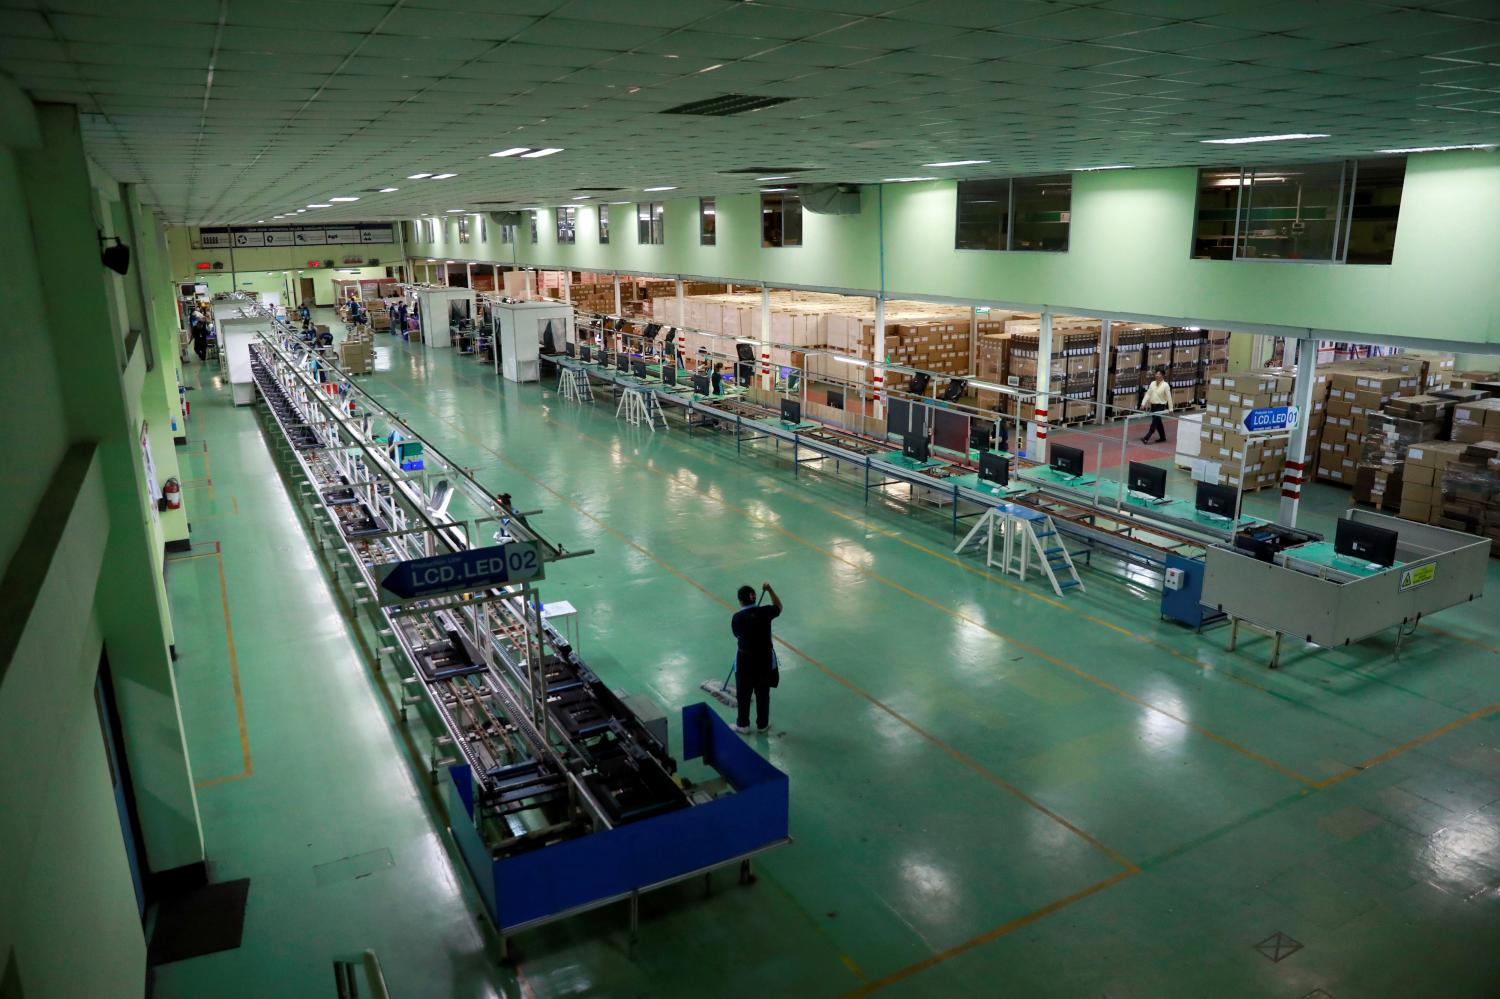 A TV assembly line is virtually abandoned in Bangkok as the OIE downgrades to MPI to as low as -7%. REUTERS